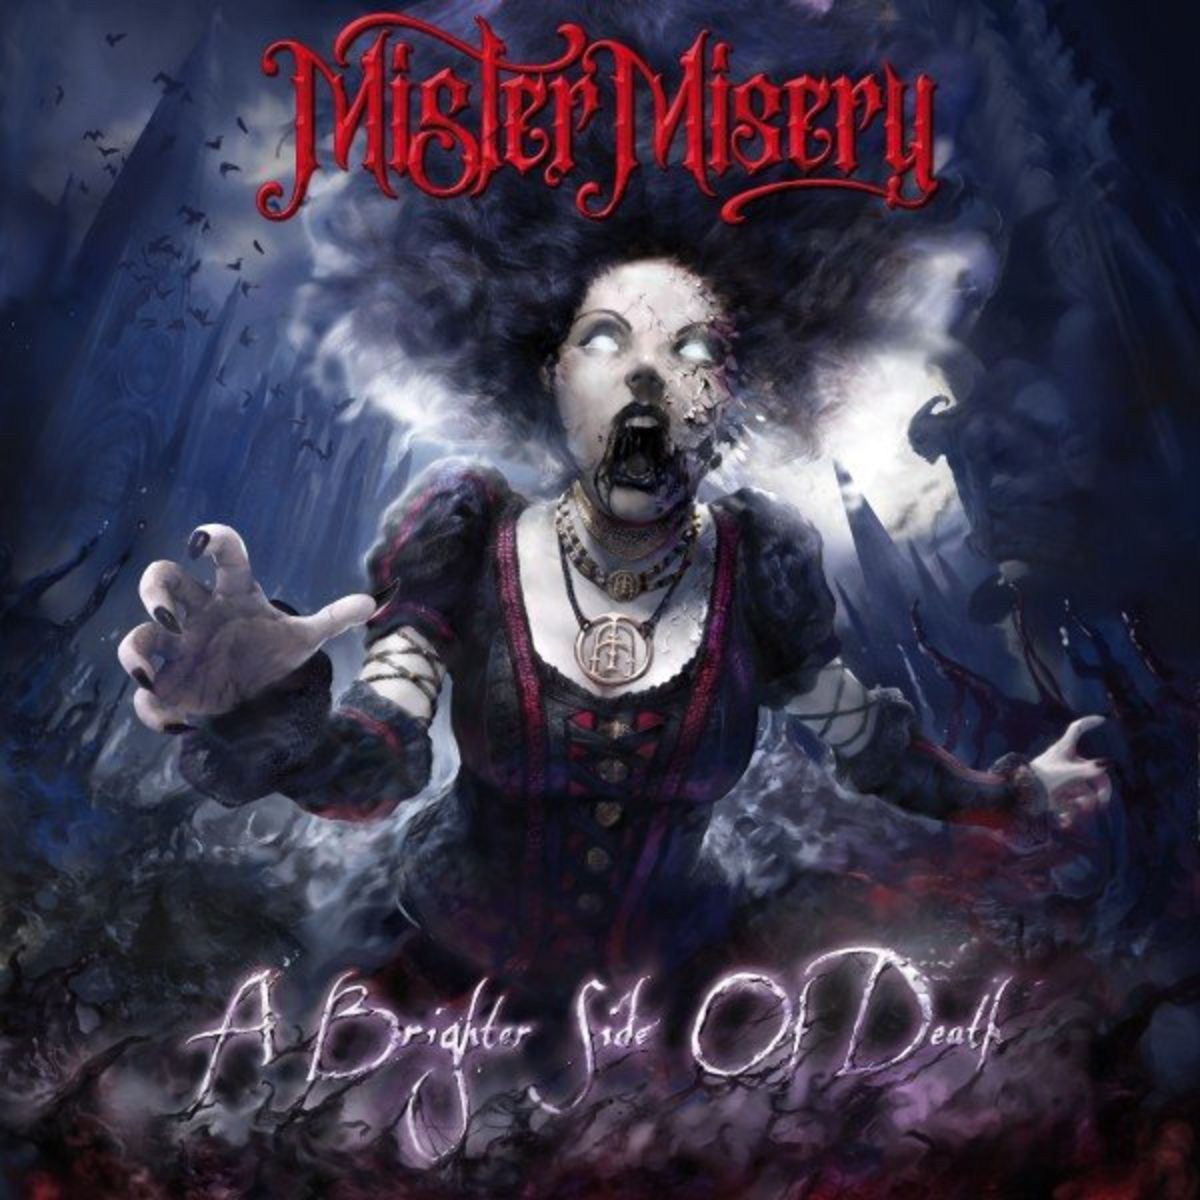 Mister Misery - A Brighter Side of Death (2021)